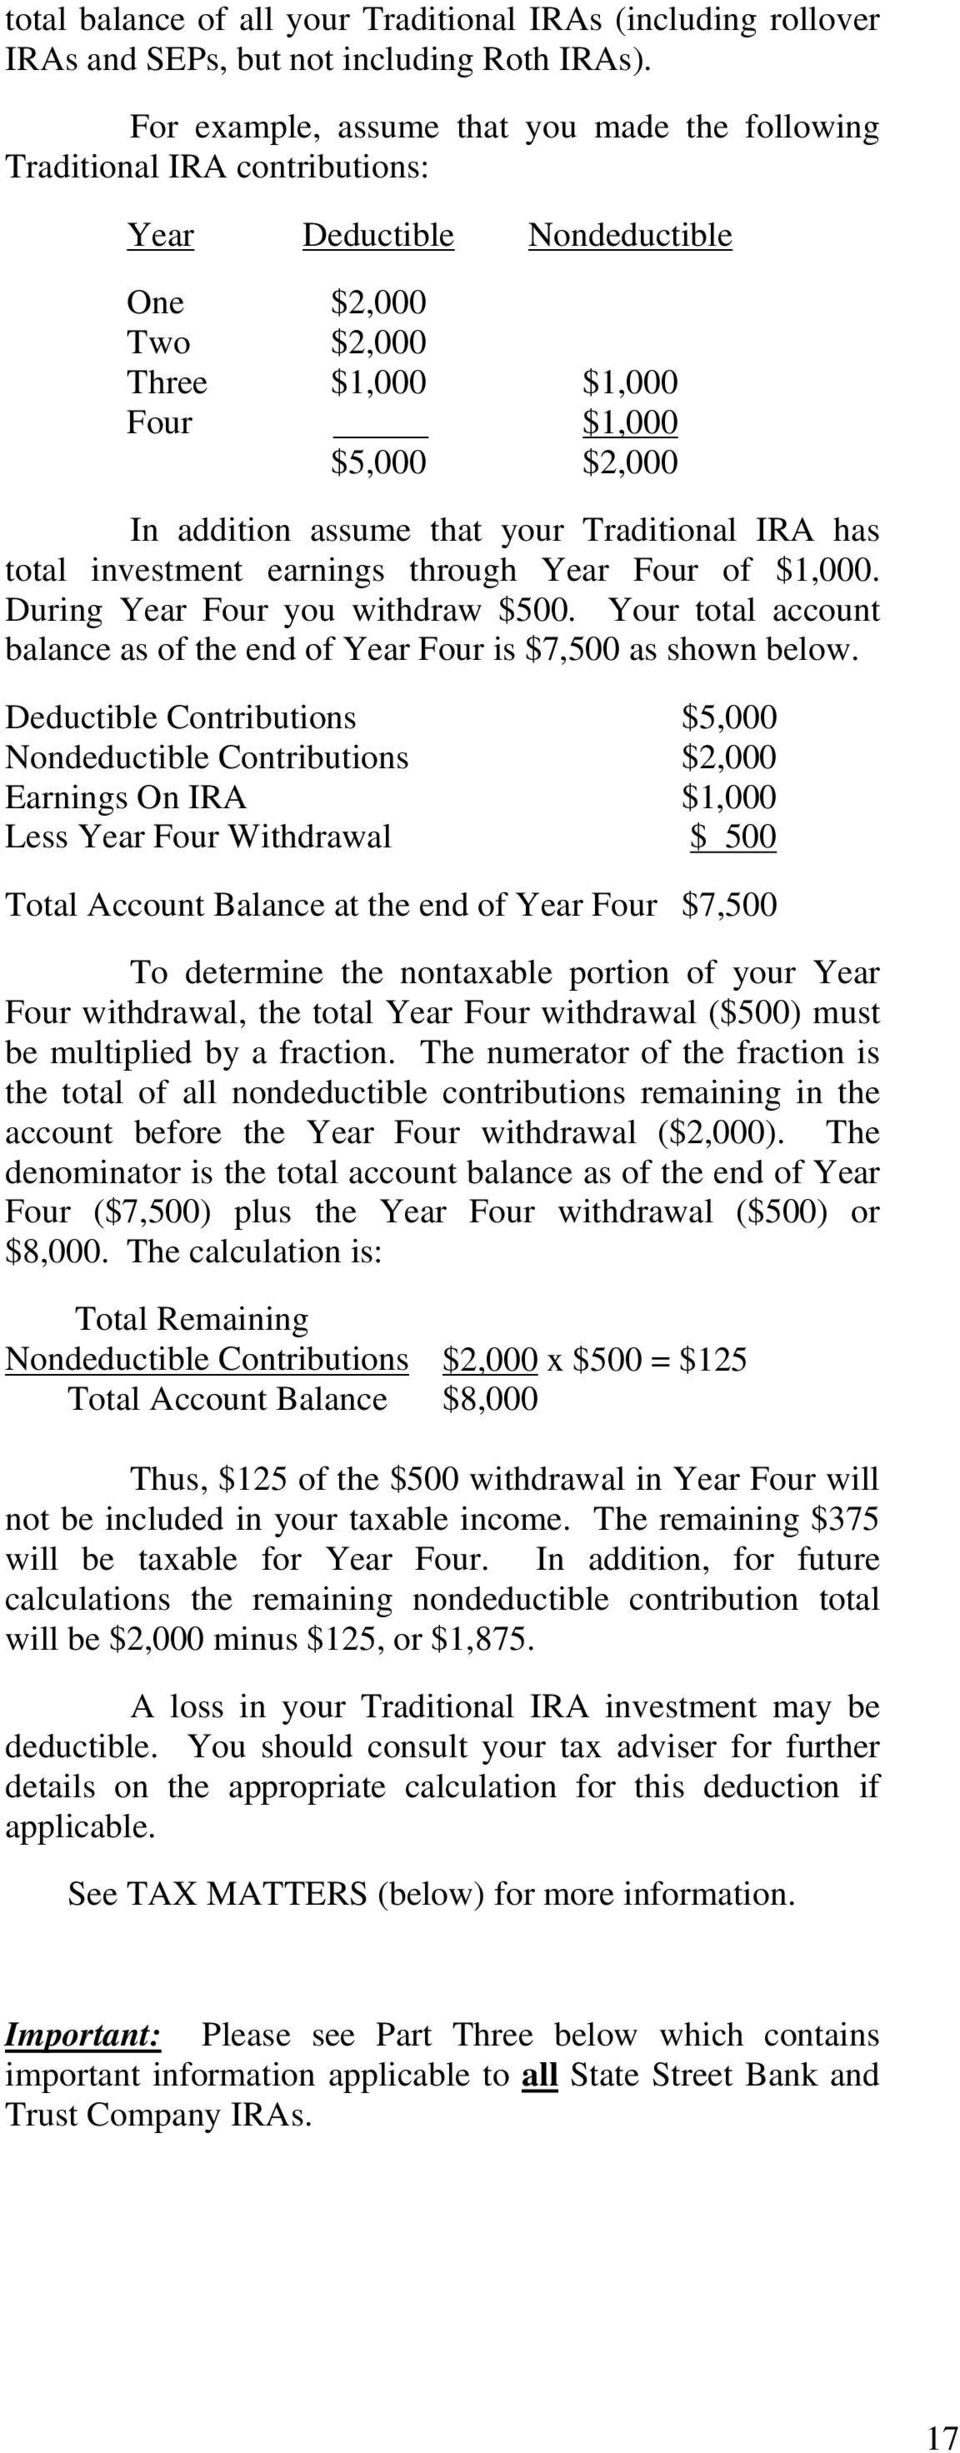 that your Traditional IRA has total investment earnings through Year Four of $1,000. During Year Four you withdraw $500. Your total account balance as of the end of Year Four is $7,500 as shown below.